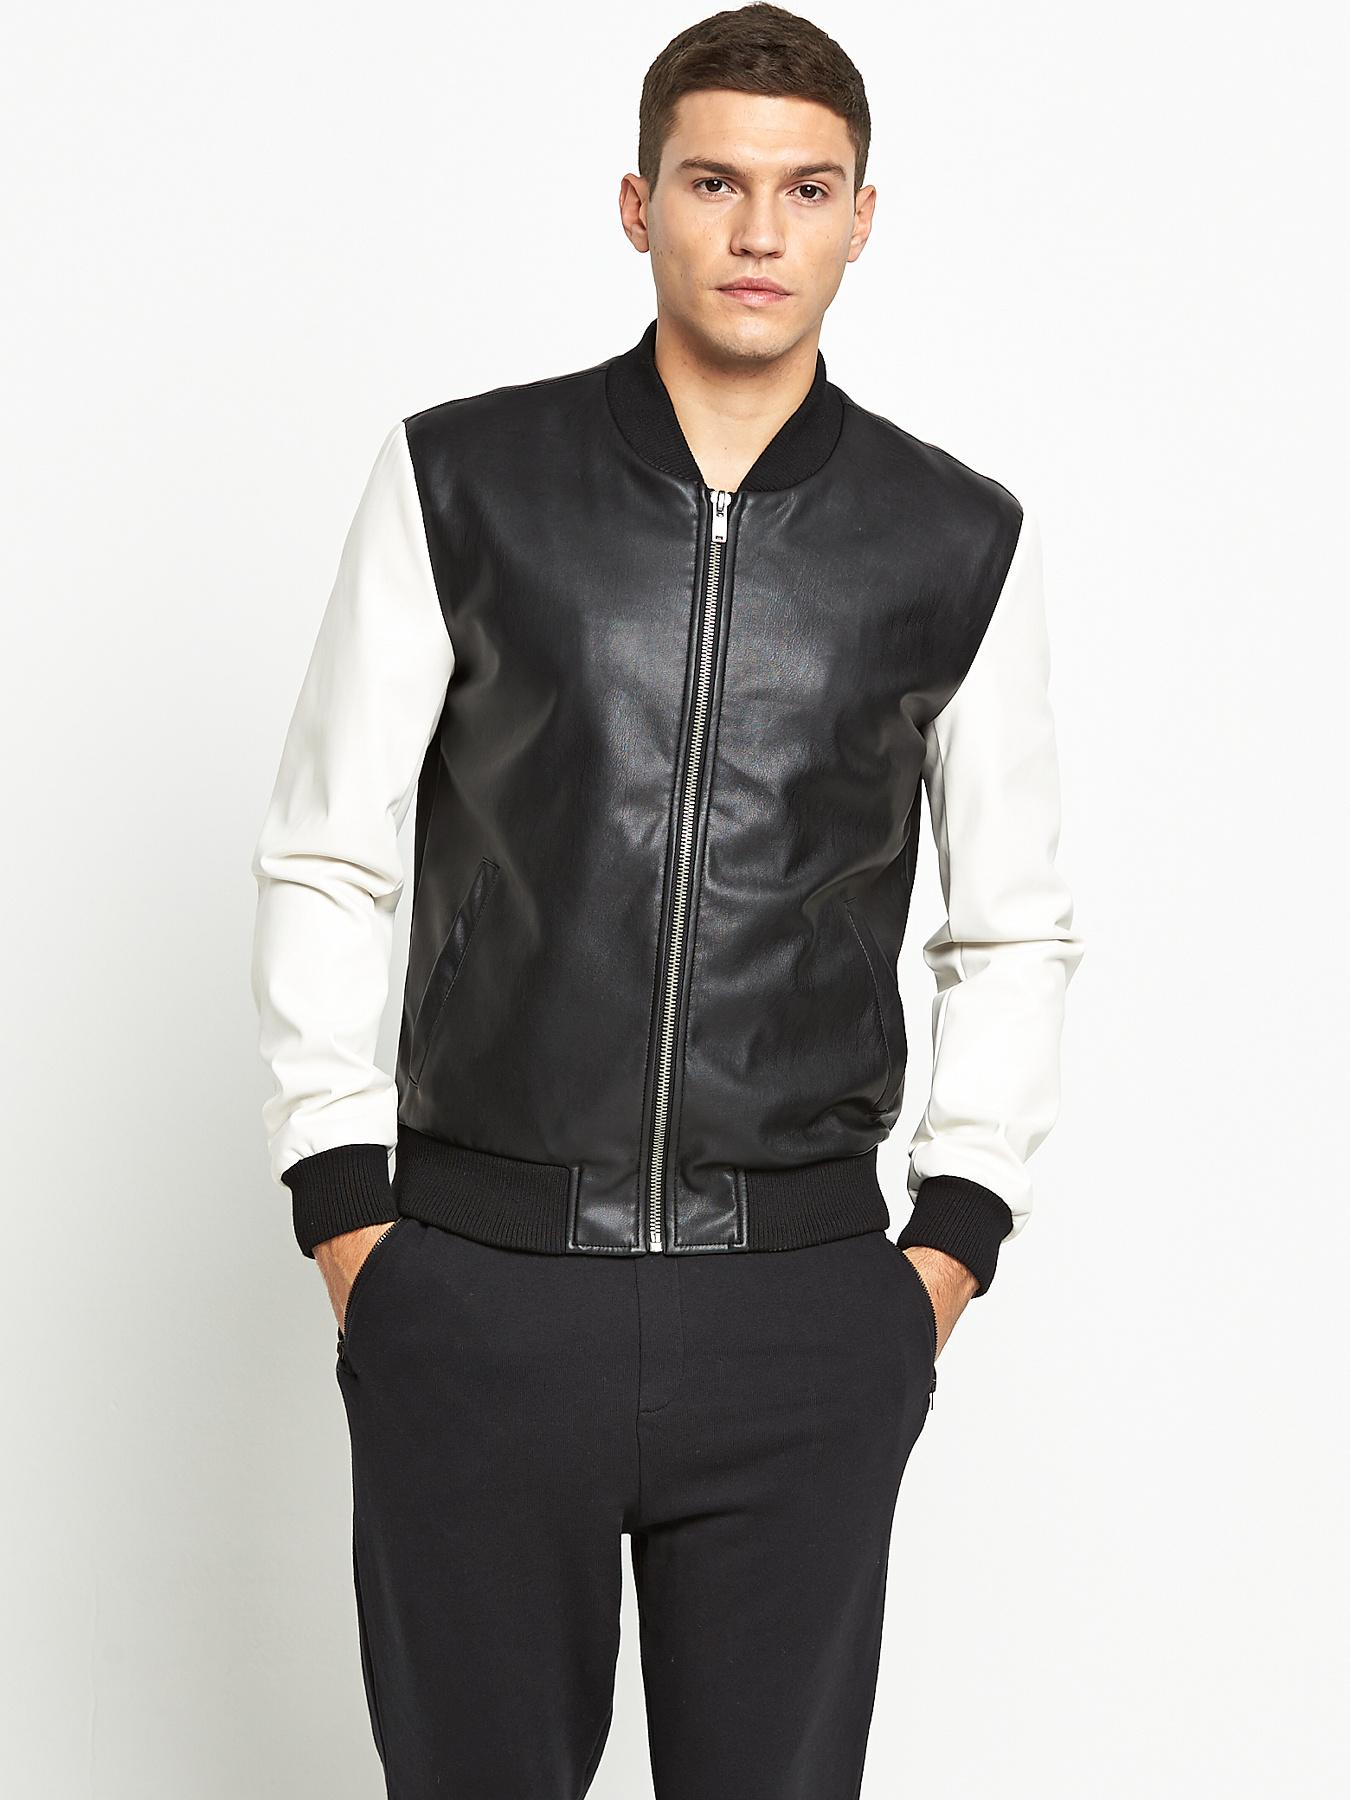 ONLY & SONS Mens Bomber Jacket - Black, Black